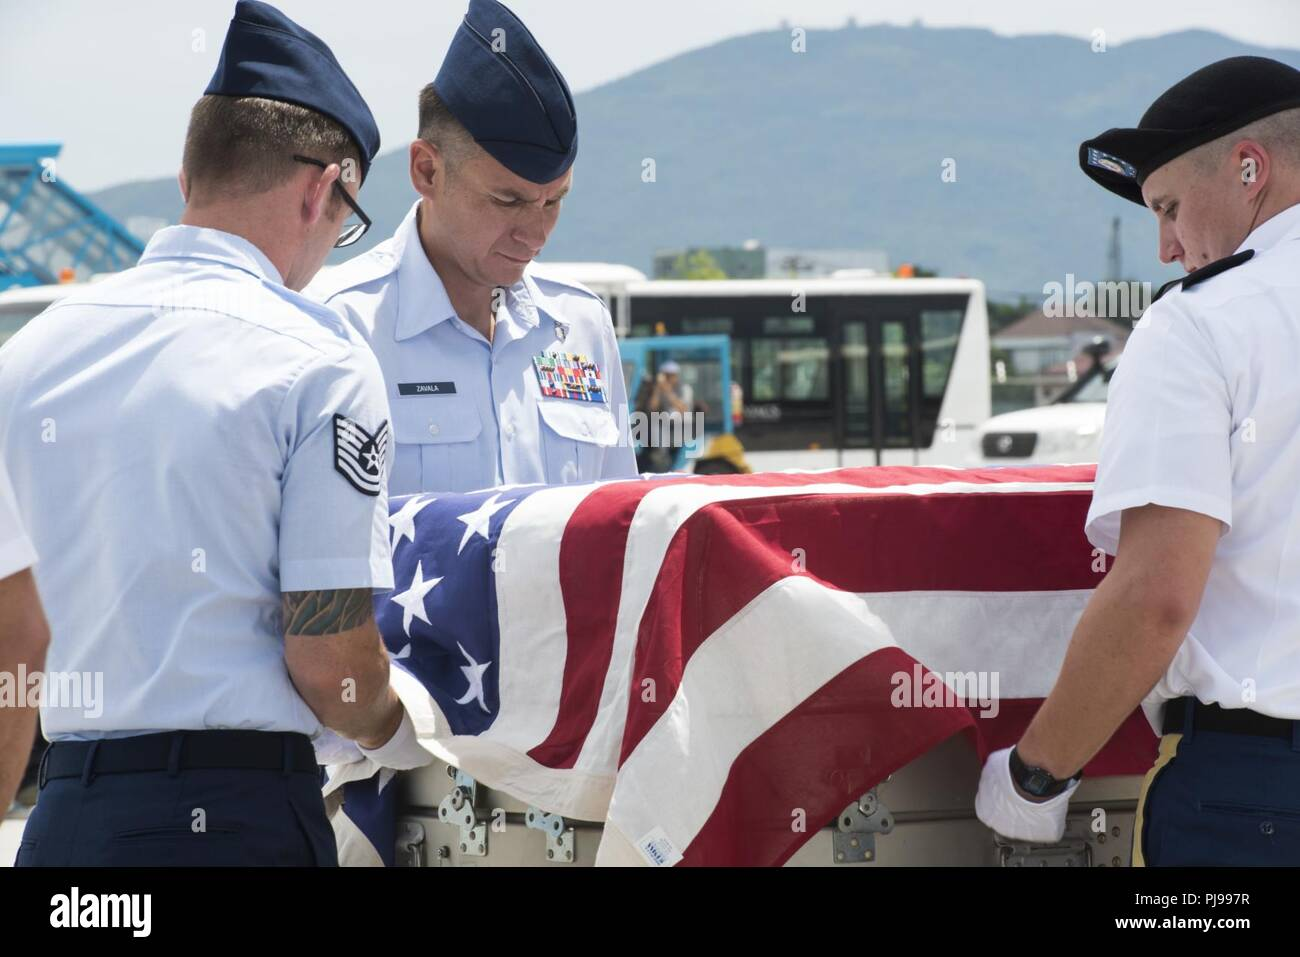 U.S. service members assigned to the Defense POW/MIA Accounting Agency (DPAA), drape a transfer case with the American flag during a repatriation ceremony, Da Nang, Socialist Republic of Vietnam, July 8, 2018. The ceremony was conducted in support of DPAA's mission to provide the fullest possible accounting of our missing personnel to their families and the nation. - Stock Image